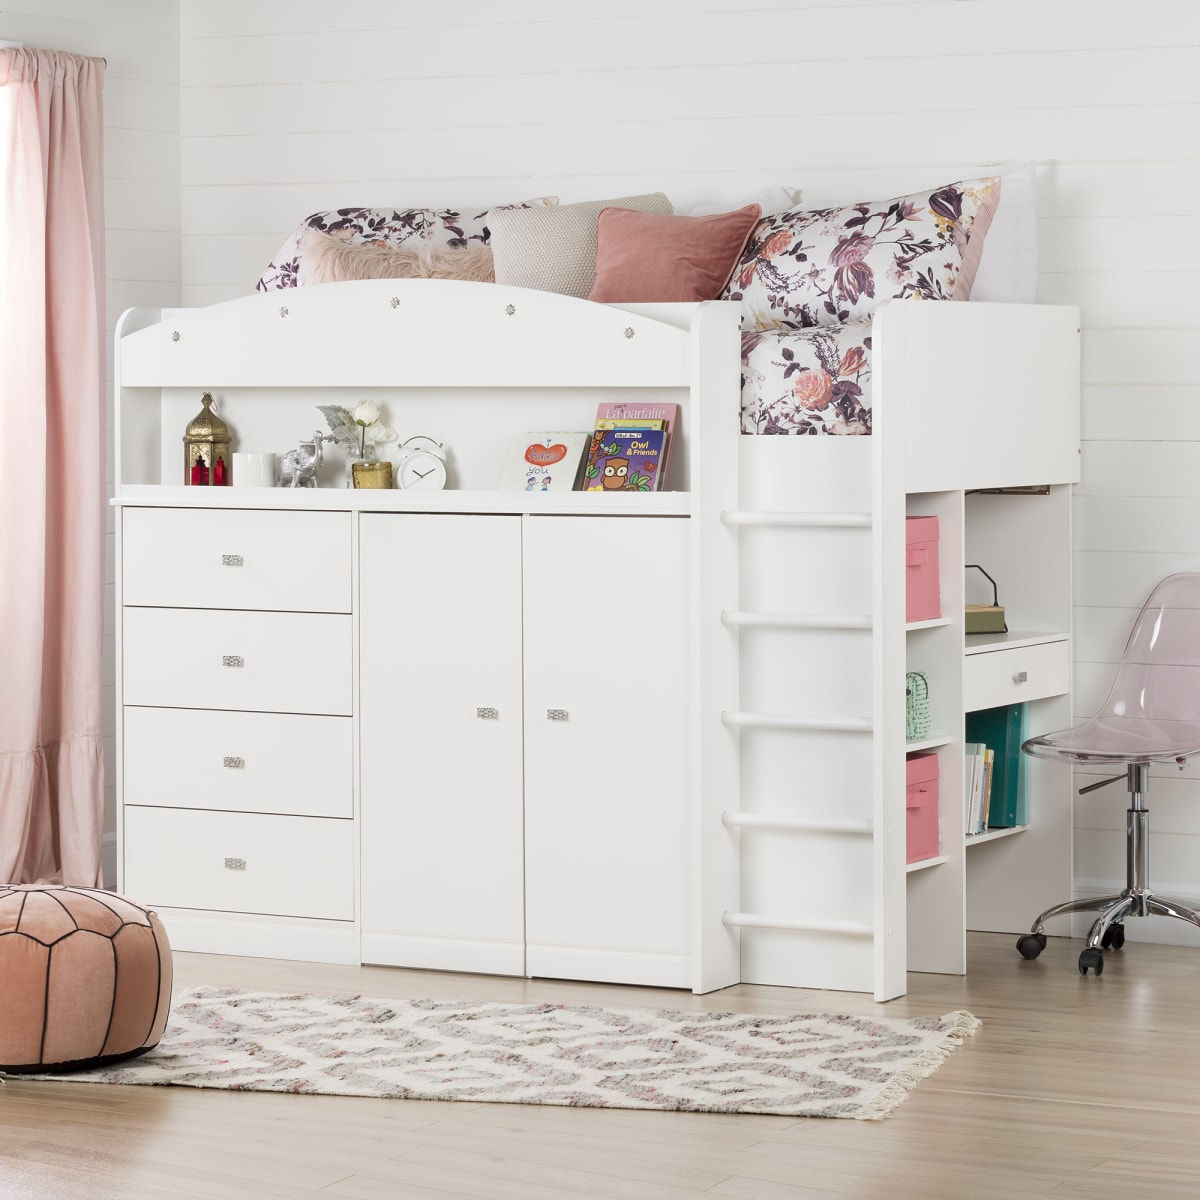 Tiara Loft Bed With Desk Bed Kids Bedroom Baby And Kids Products South Shore Furniture Us Furniture For Sale Designed And Manufactured In North America